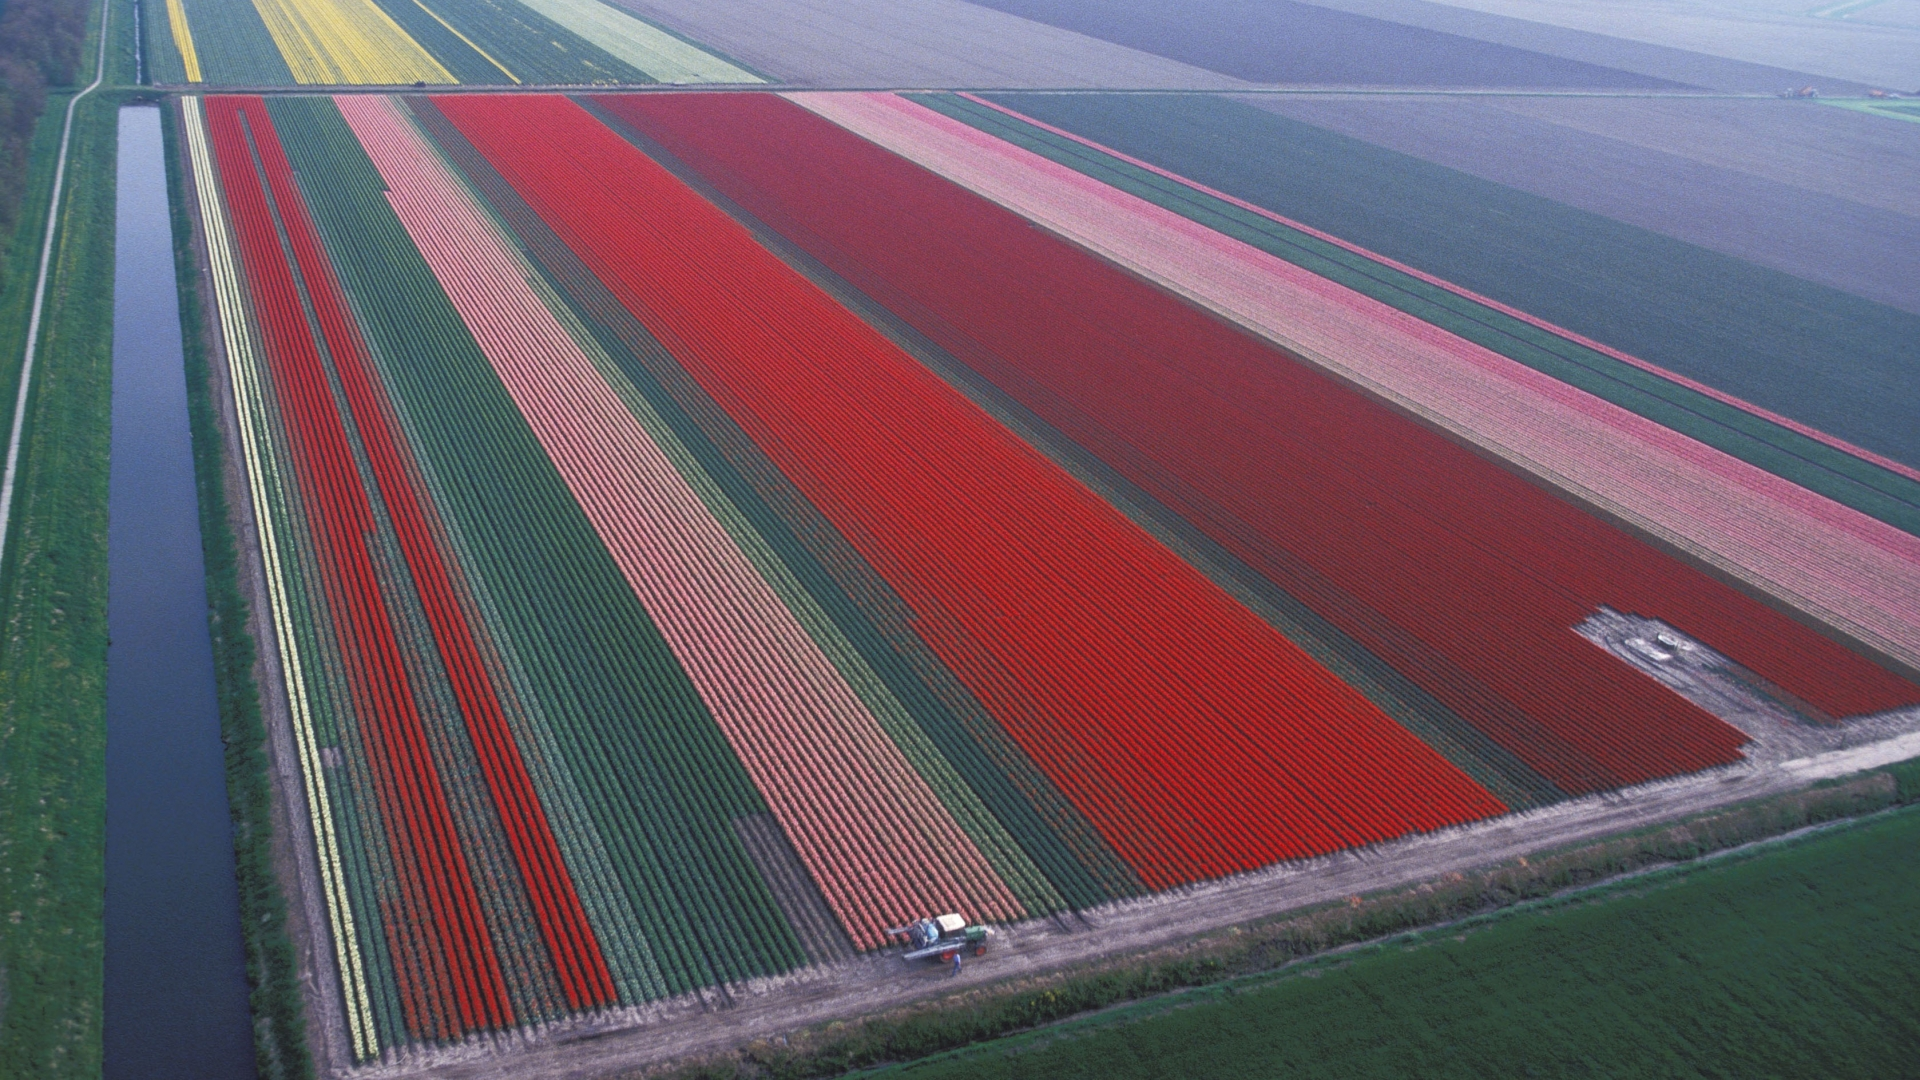 Tulips in Lisse, Netherlands, 1994. (Credit: Marc DeVille/Gamma-Rapho via Getty Images)